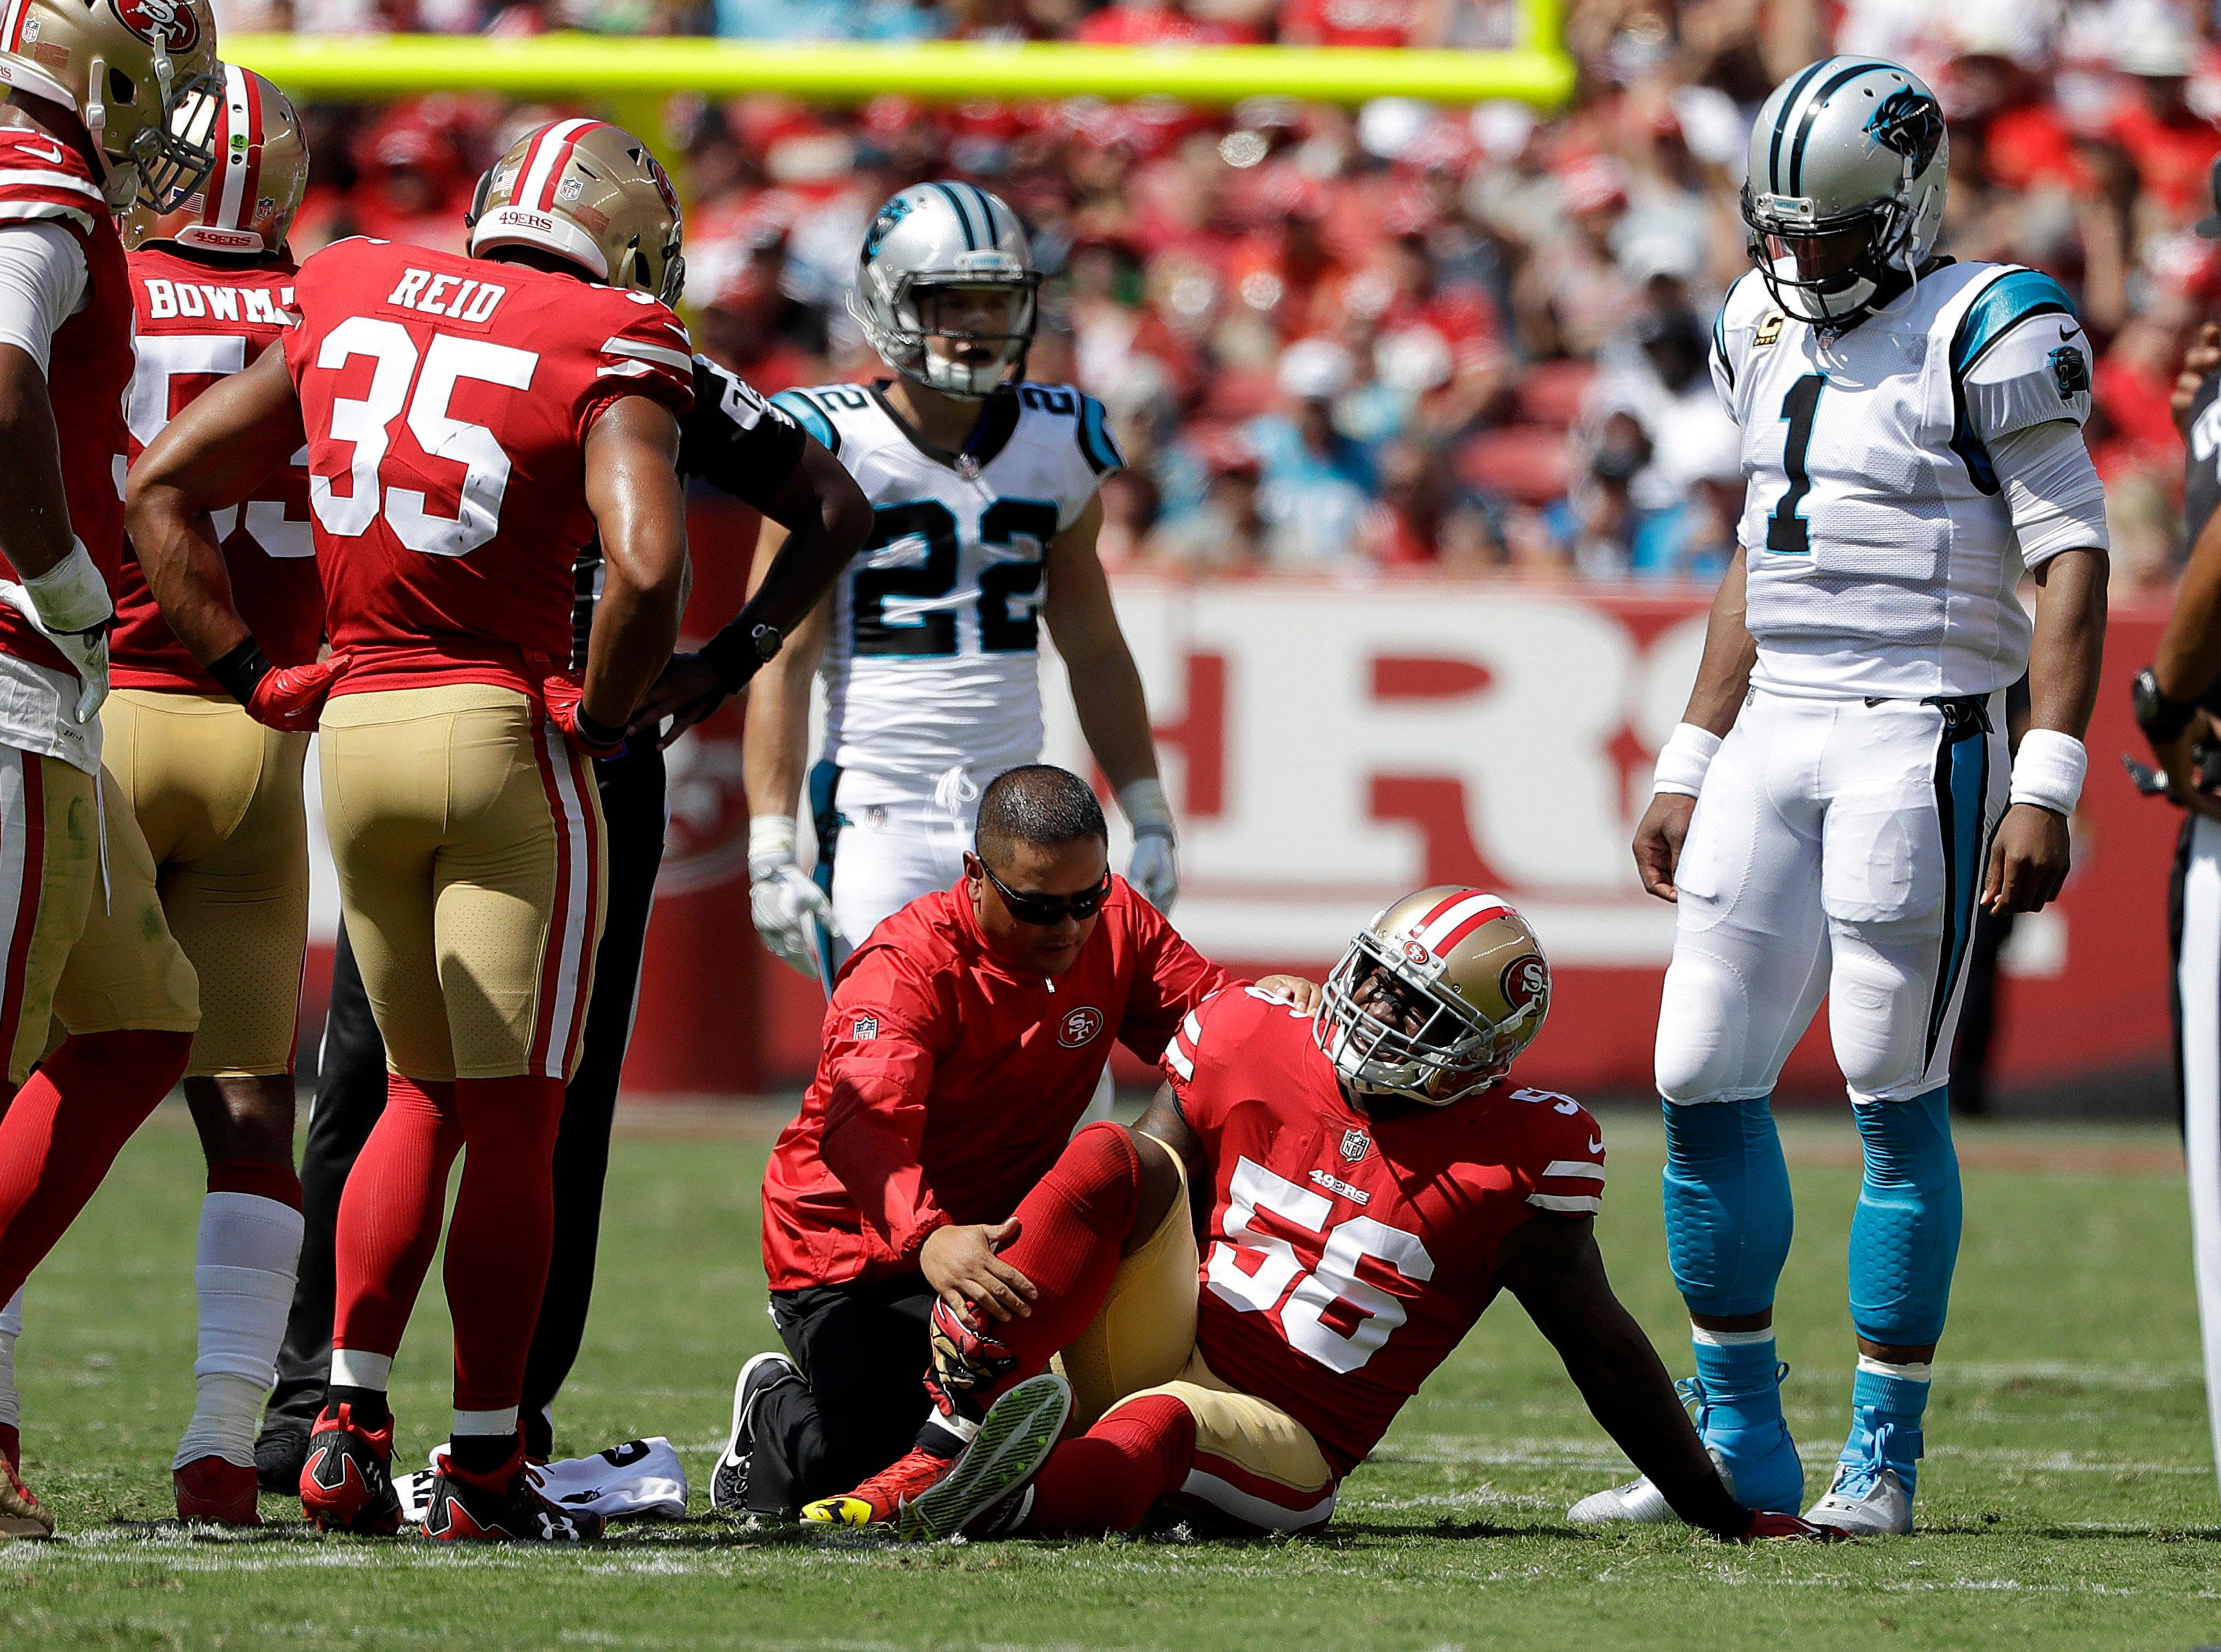 San Francisco 49ers linebacker Reuben Foster (56) is tended to by a trainer as teammates and Carolina Panthers quarterback Cam Newton (1) watch during the first half of an NFL football game in Santa Clara, Calif., Sunday, Sept. 10, 2017. (AP Photo/Marcio Jose Sanchez)